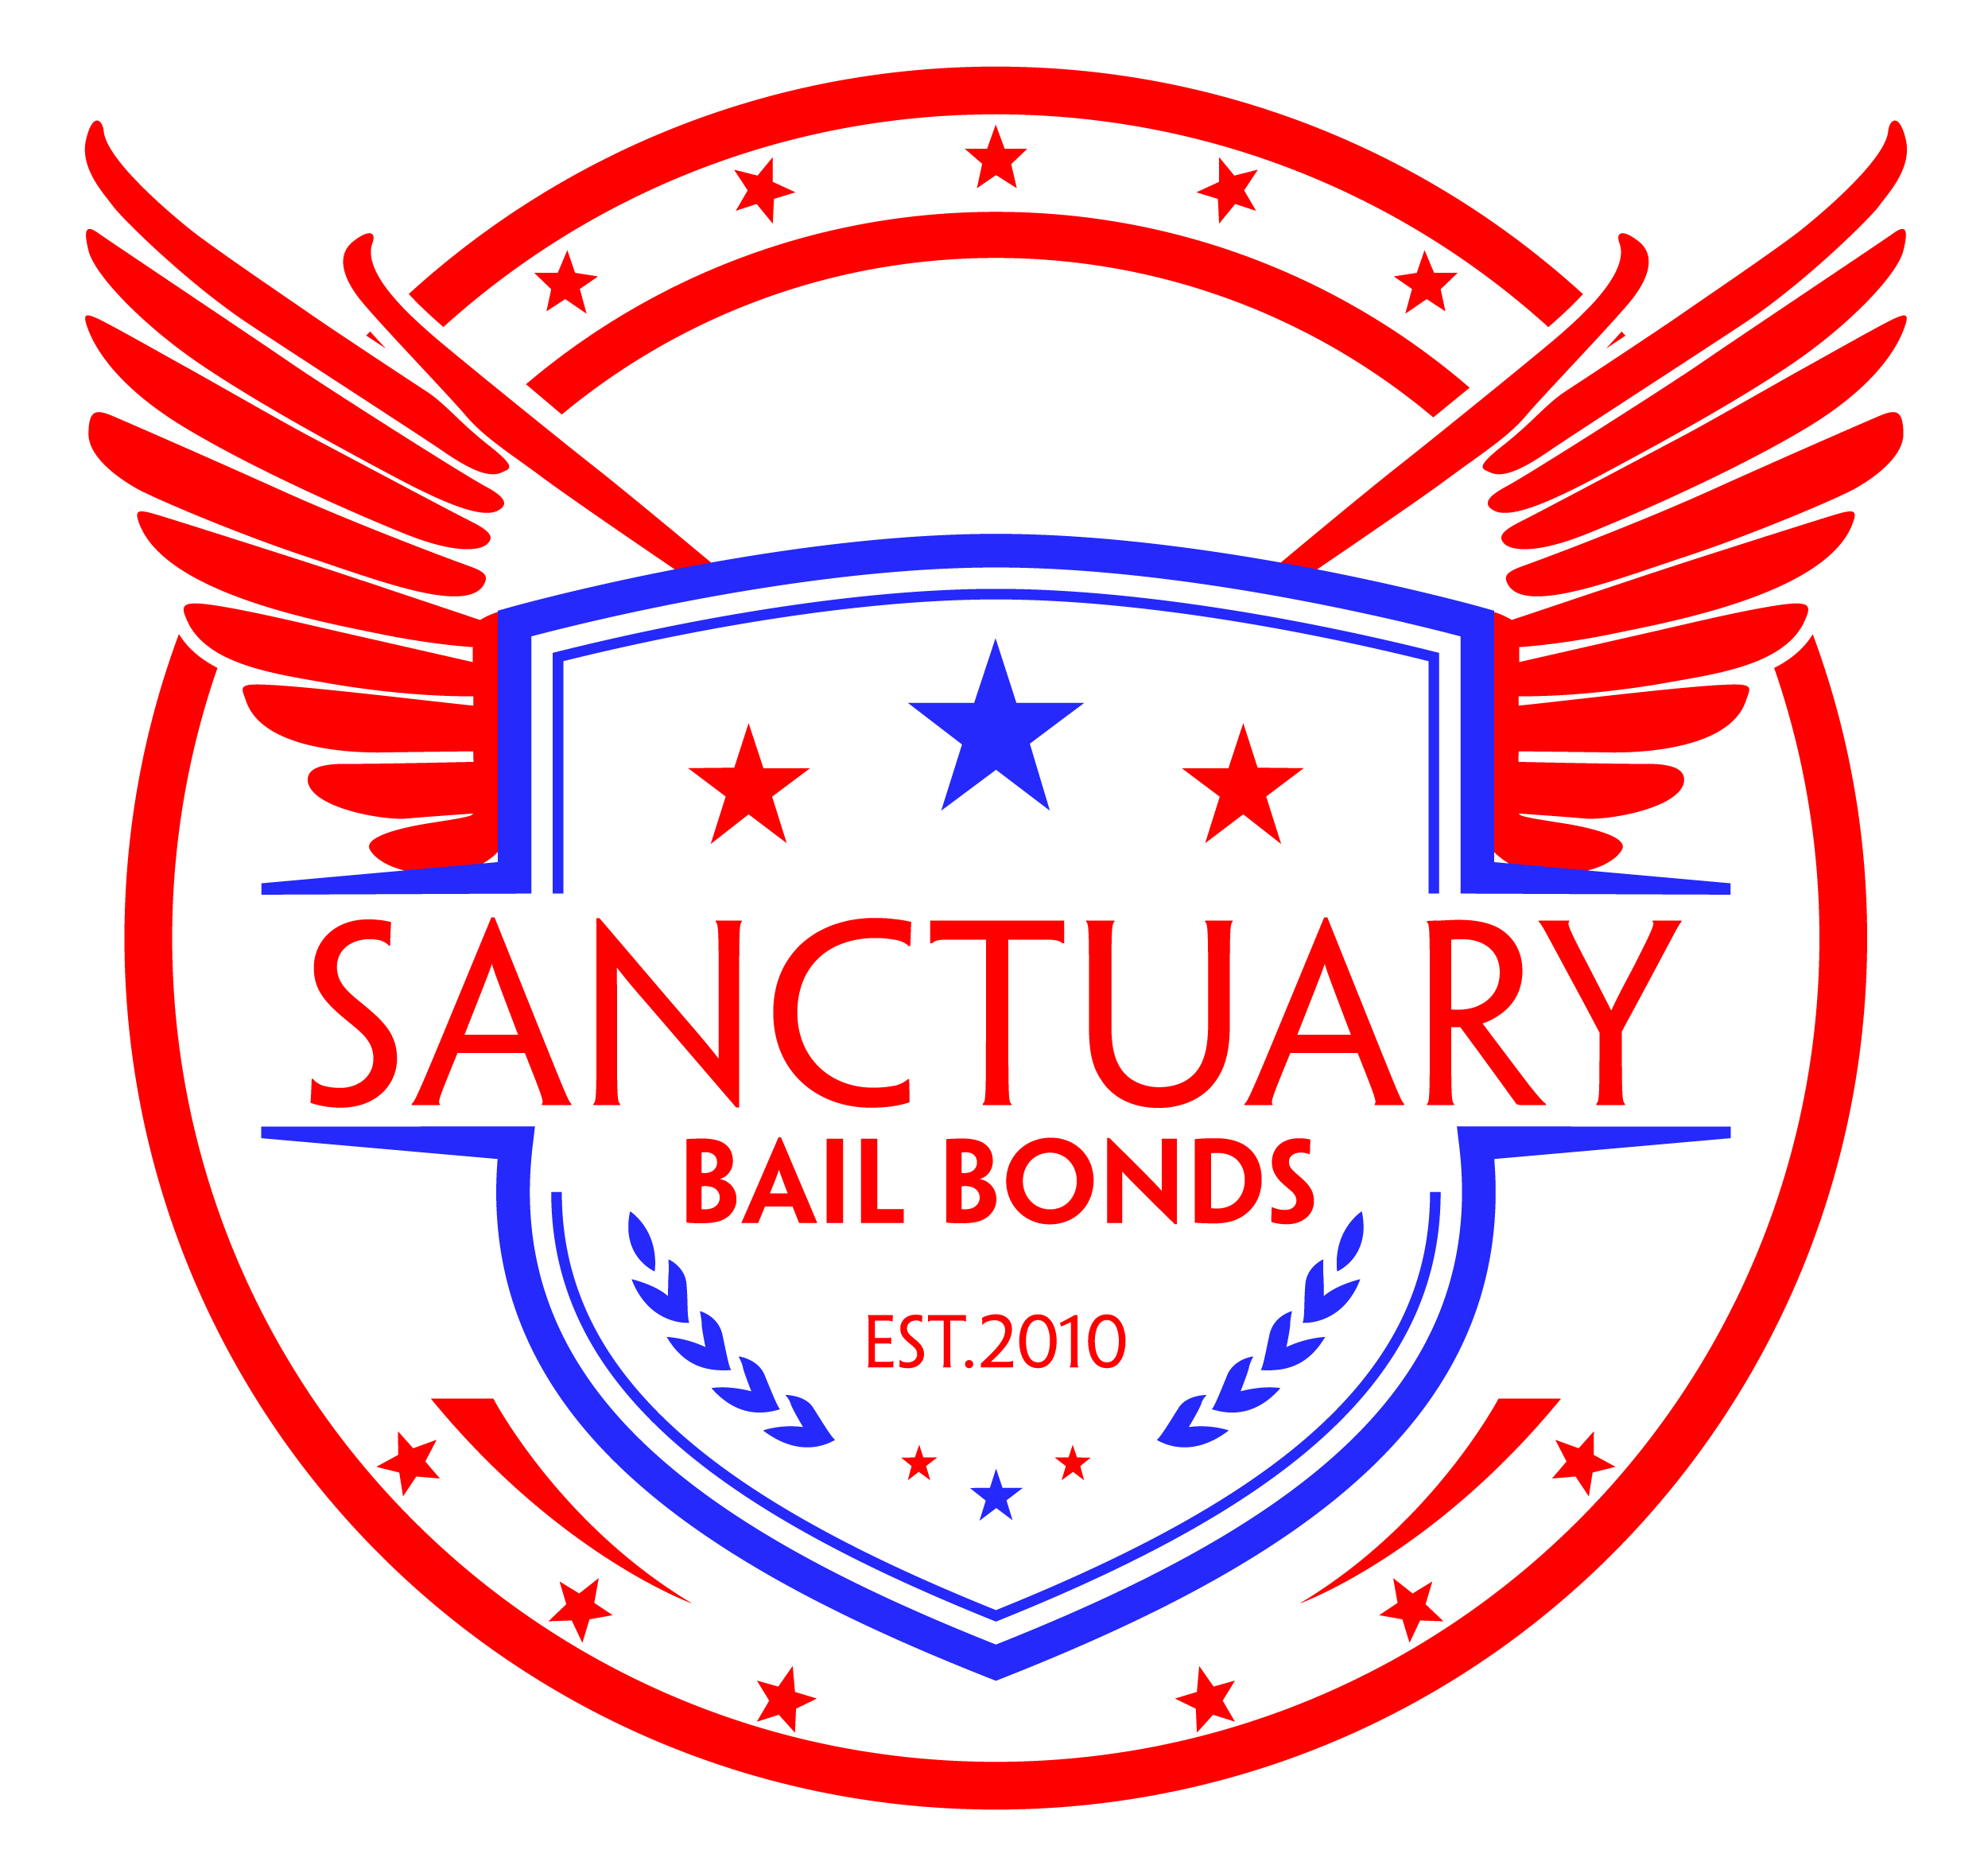 Sanctuary Bail Bonds reviews, opinions and consumer feedback